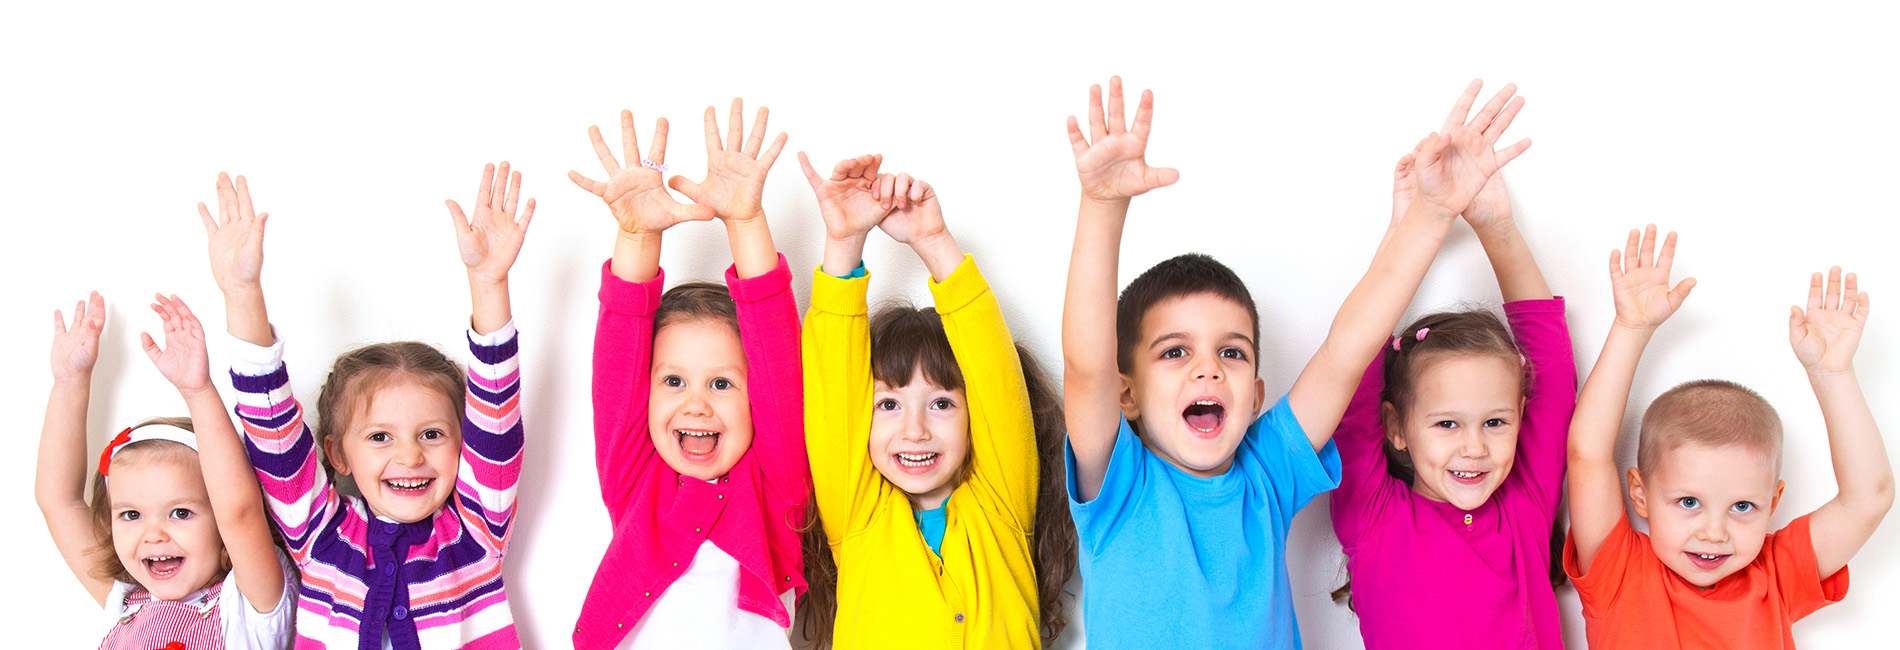 Children smiling with raising their hands.